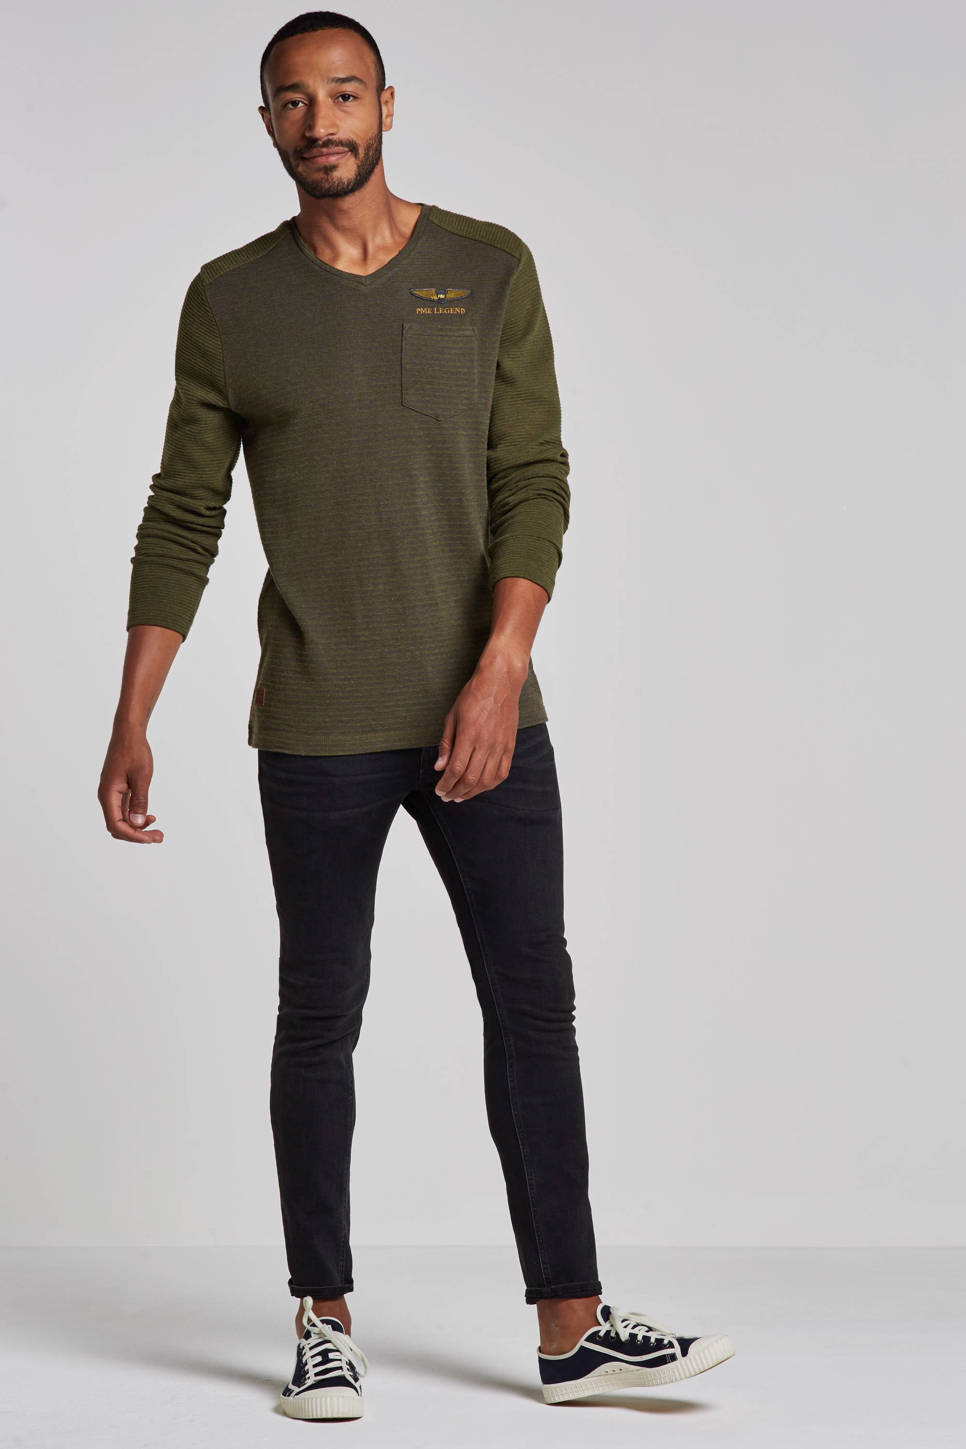 jack-jones-liam-skinny-fit-jeans-heren-zwart-5713744902077.jpg?w=966